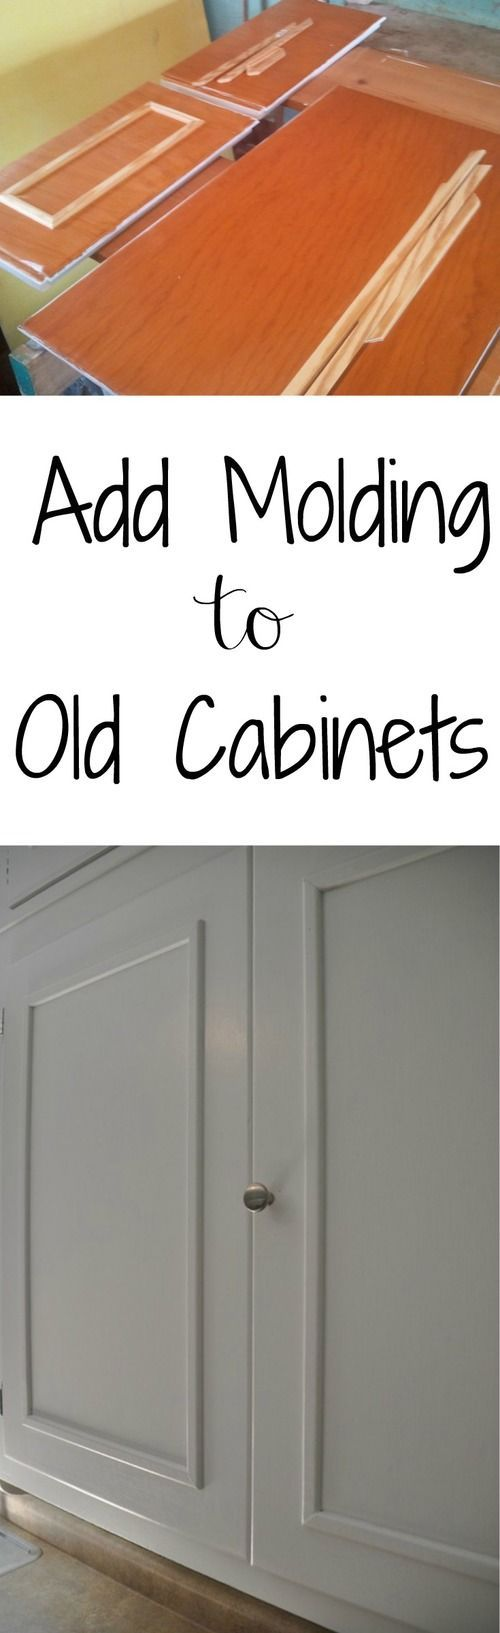 Ideas For Cabinet Doors 20 diy cabinet door makeovers and painting ideas with furniture stencils from royal design studio How To Add Cabinet Molding